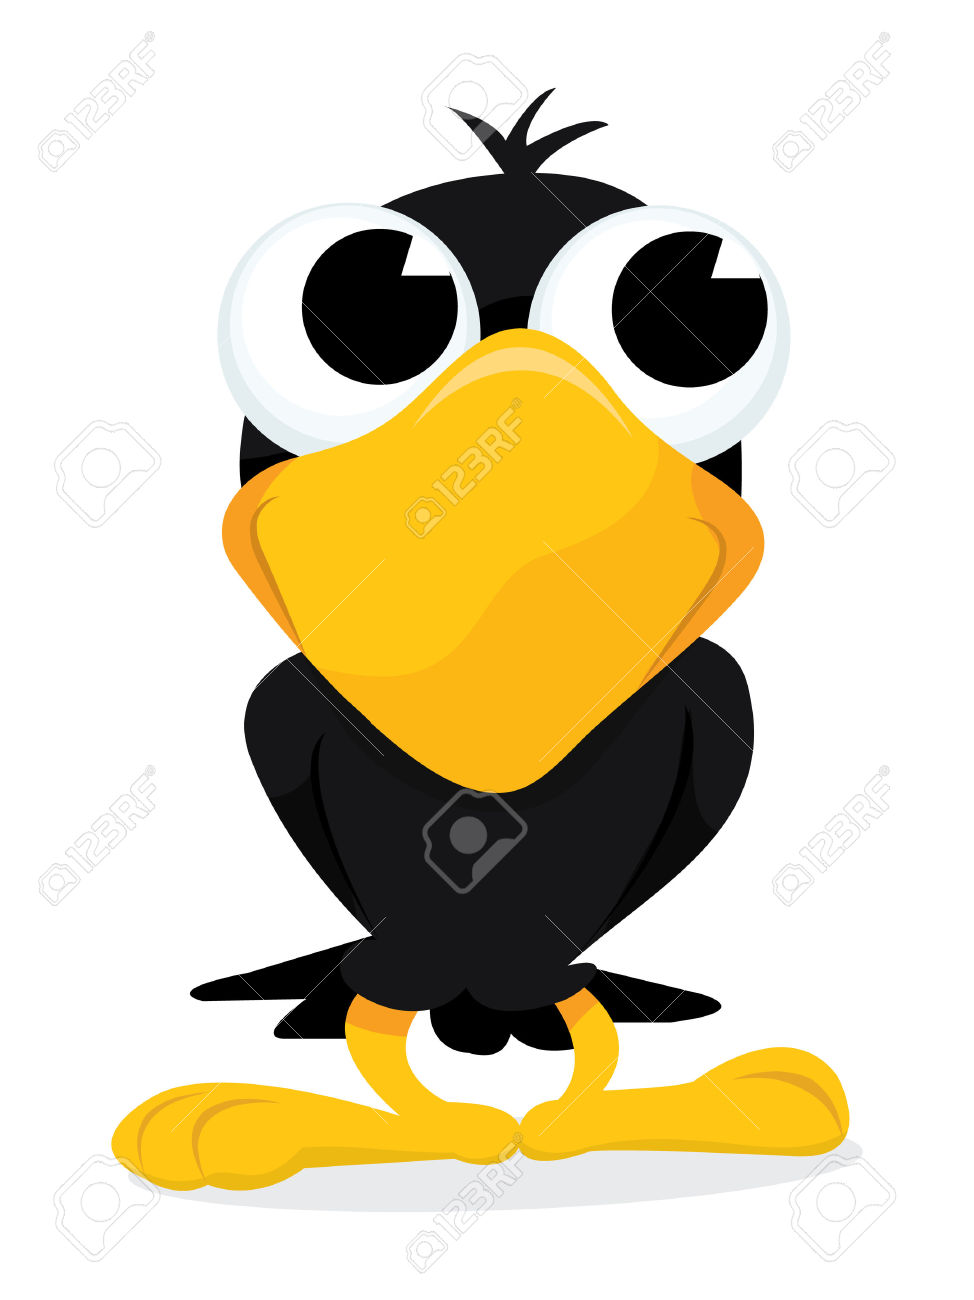 A Cartoon Vector Illustration Of A Cute Crow Just Standing.